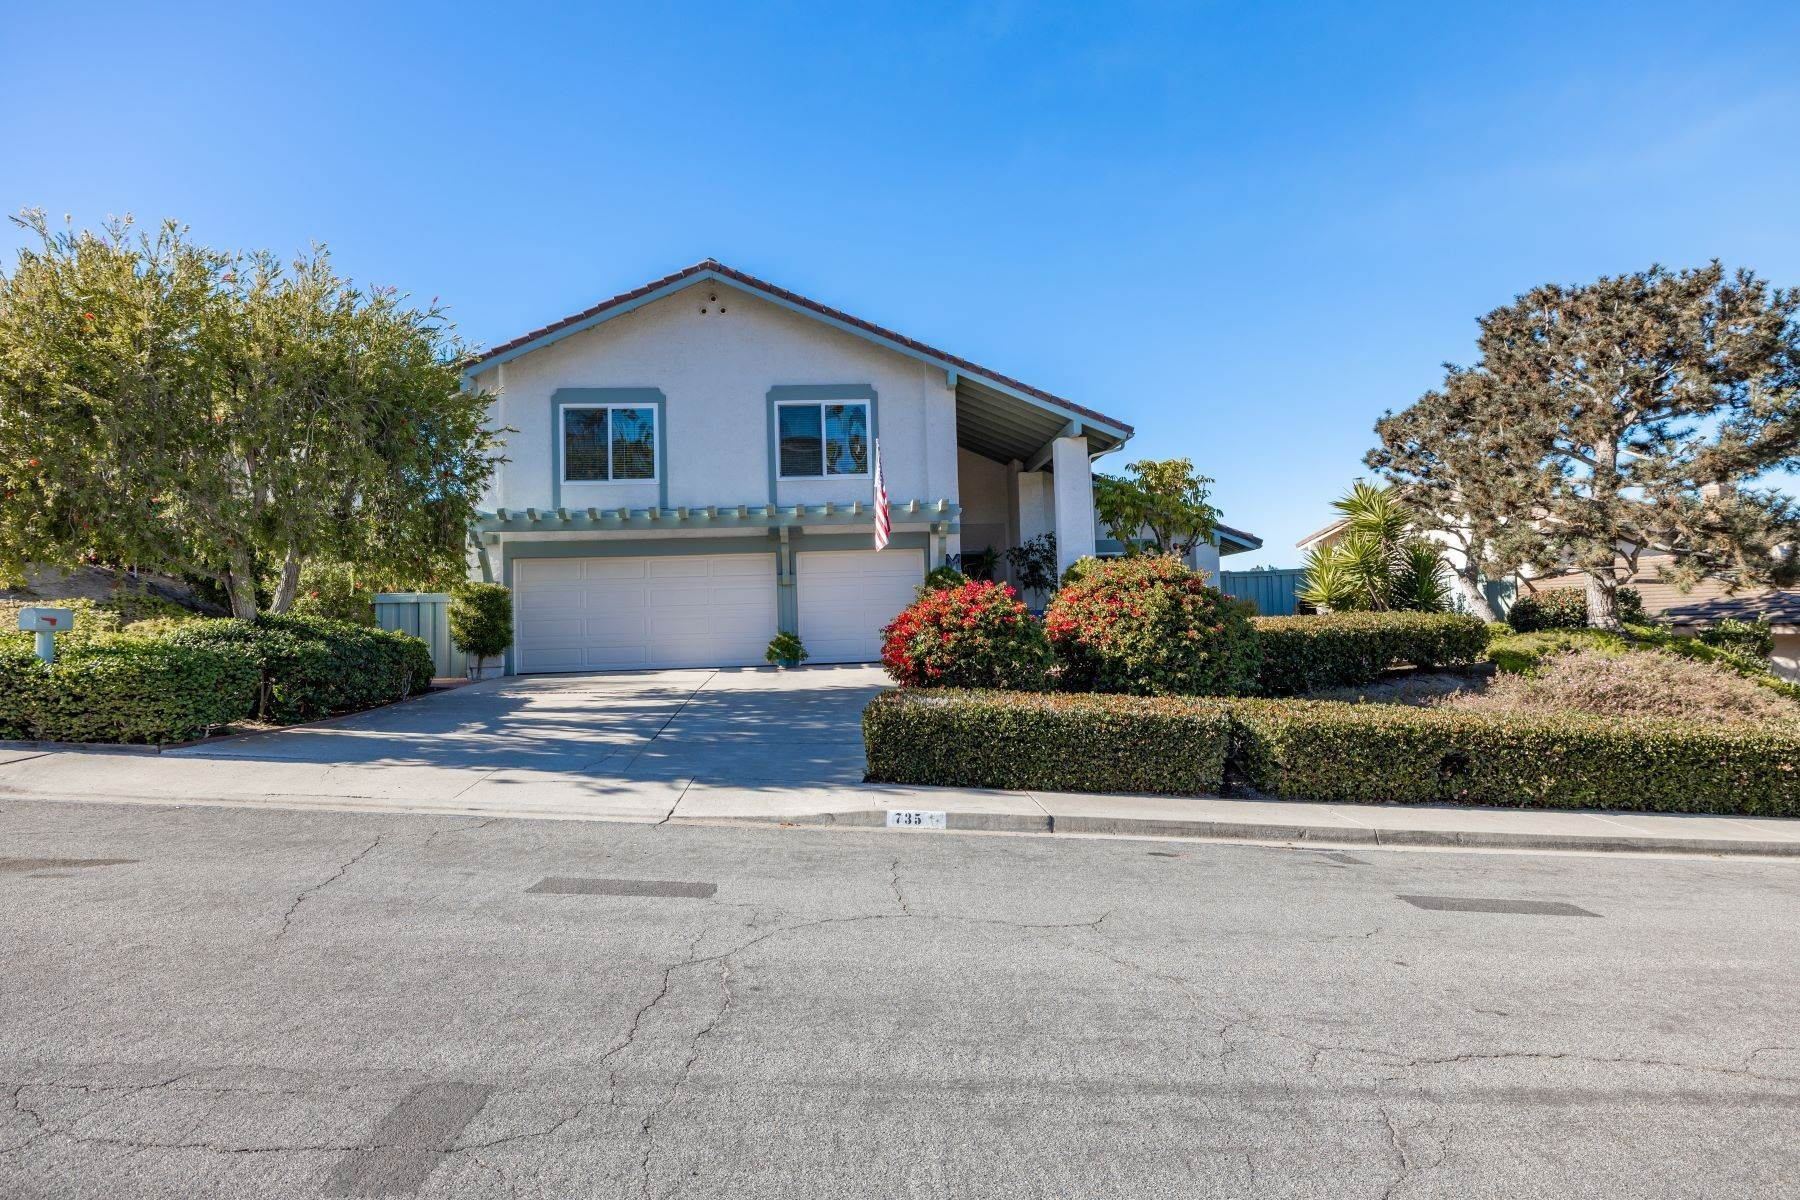 Single Family Homes for Sale at 735 Santa Paula, Solana Beach, CA 92075 735 Santa Paula Solana Beach, California 92075 United States